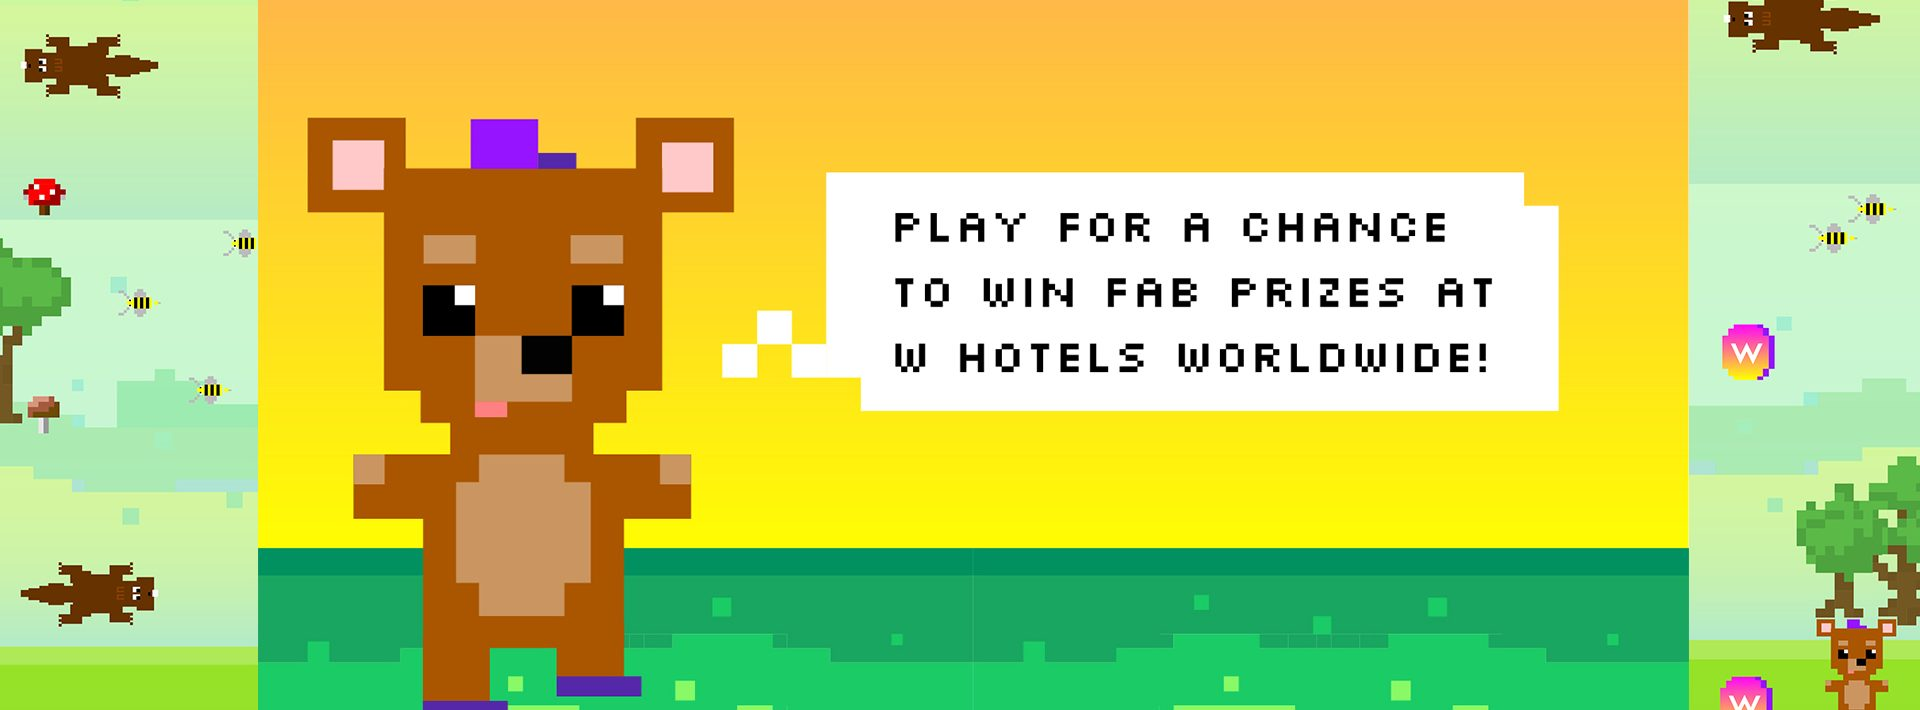 Whotels_BelletheBear_header